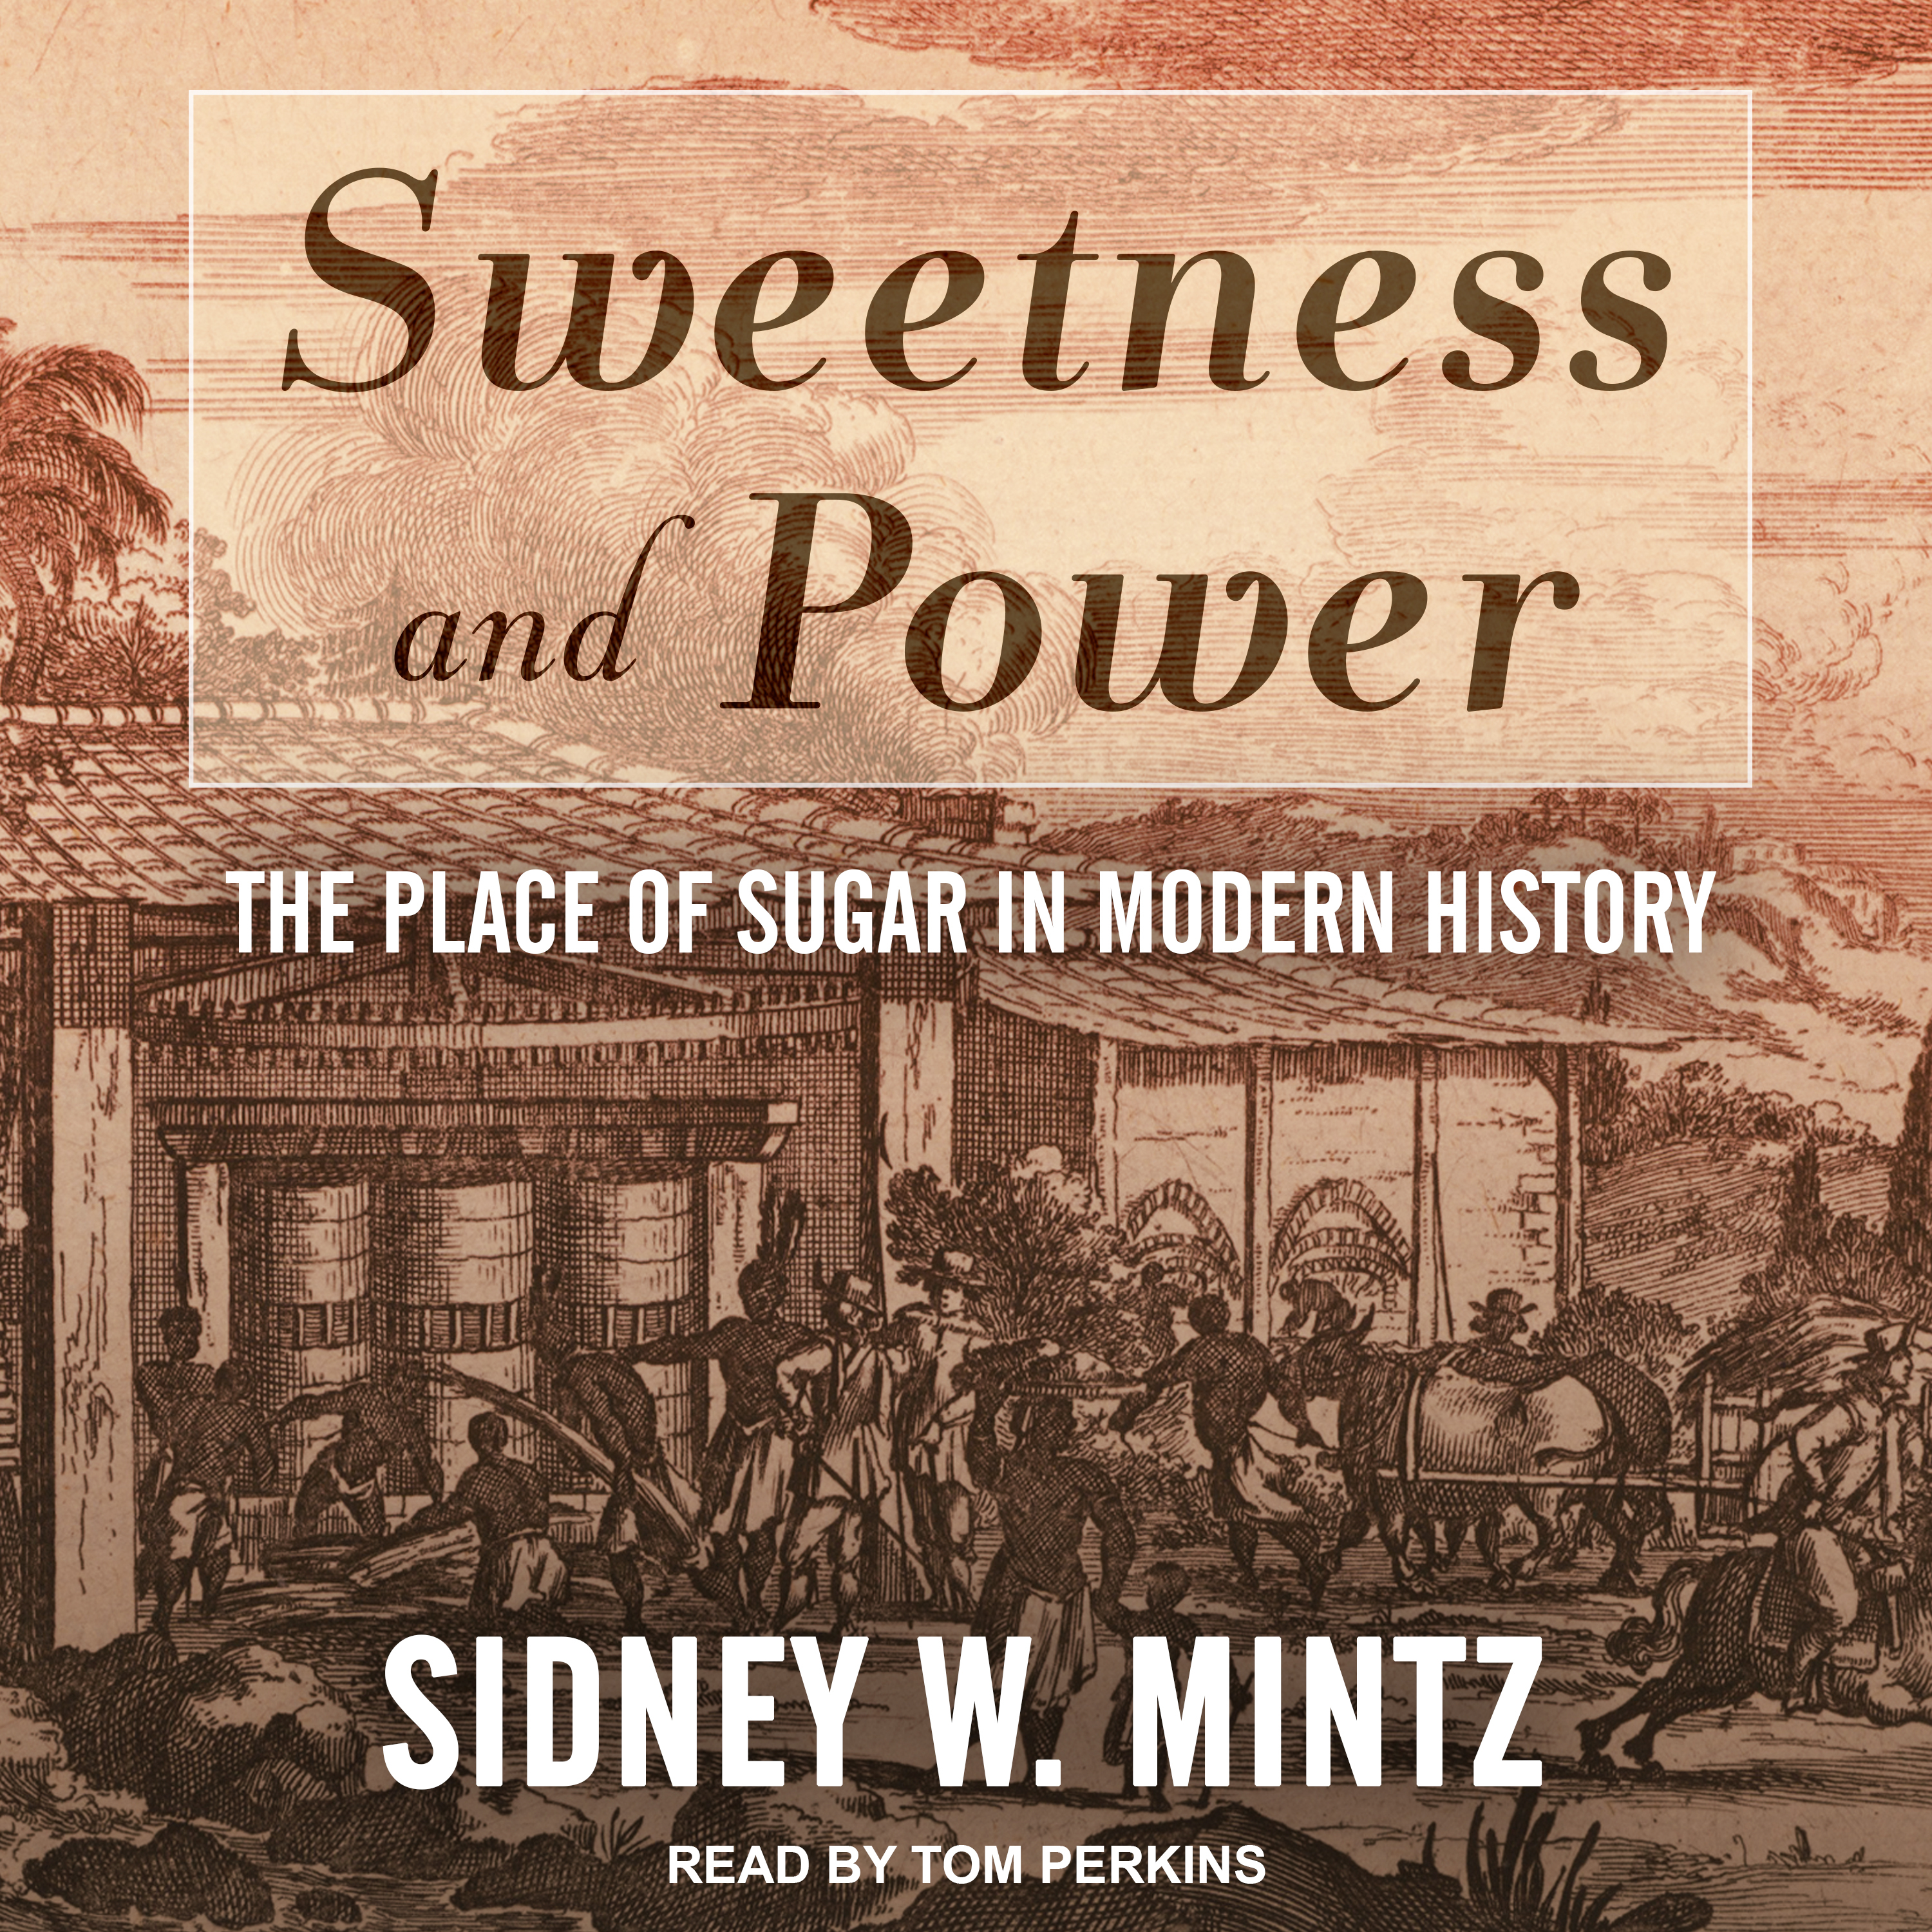 Printable Sweetness and Power: The Place of Sugar in Modern History Audiobook Cover Art